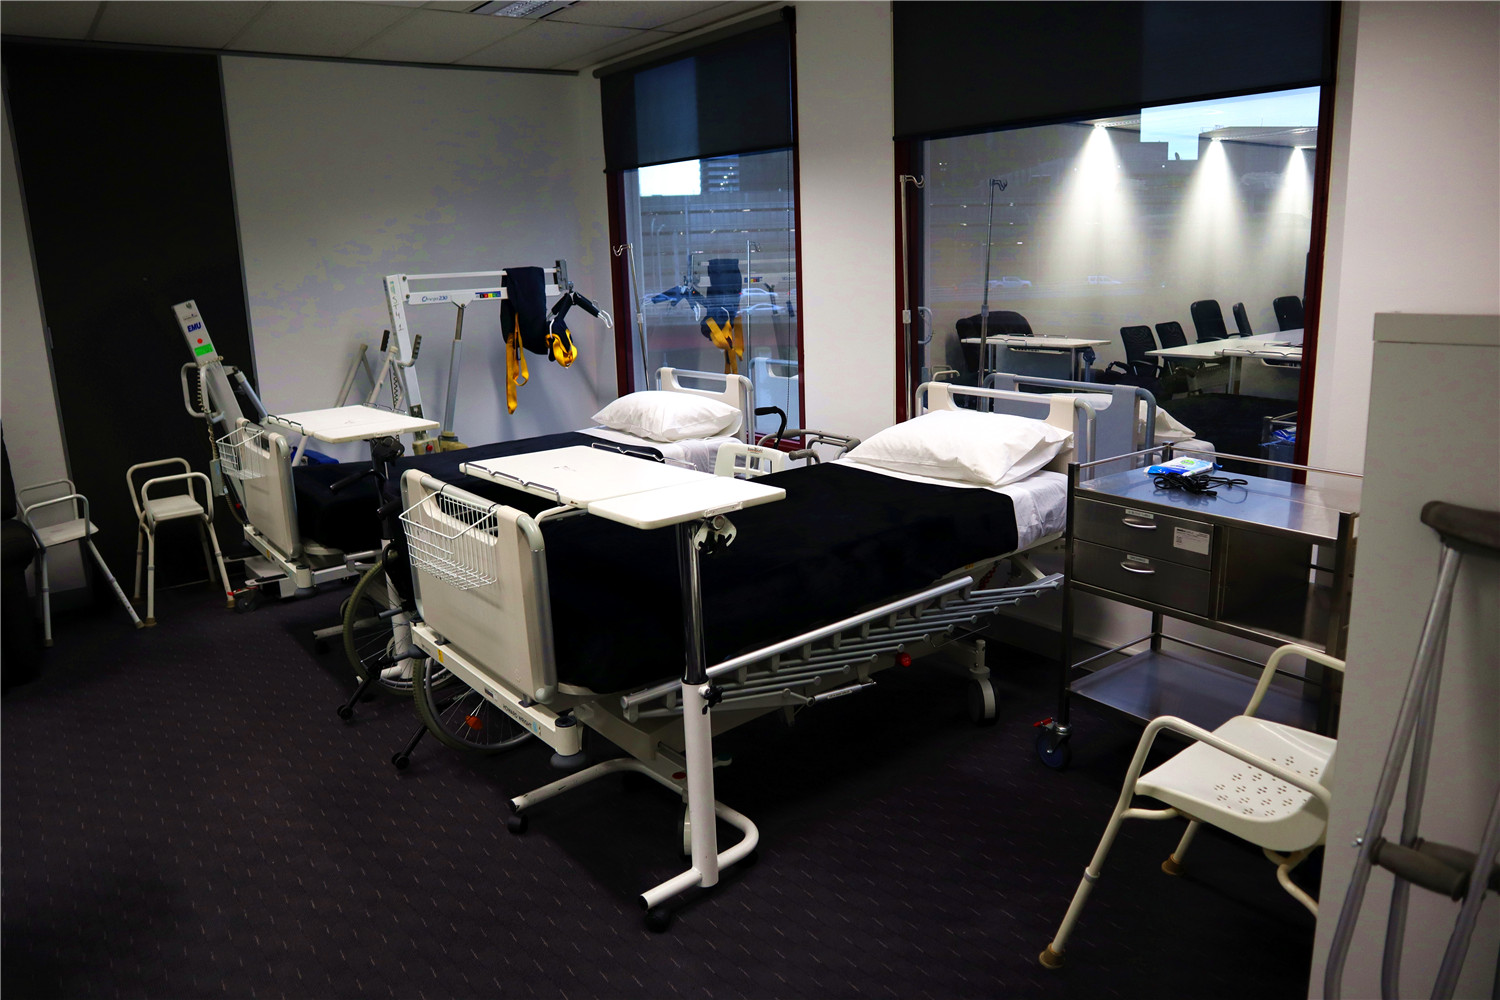 simulation room02.jpg